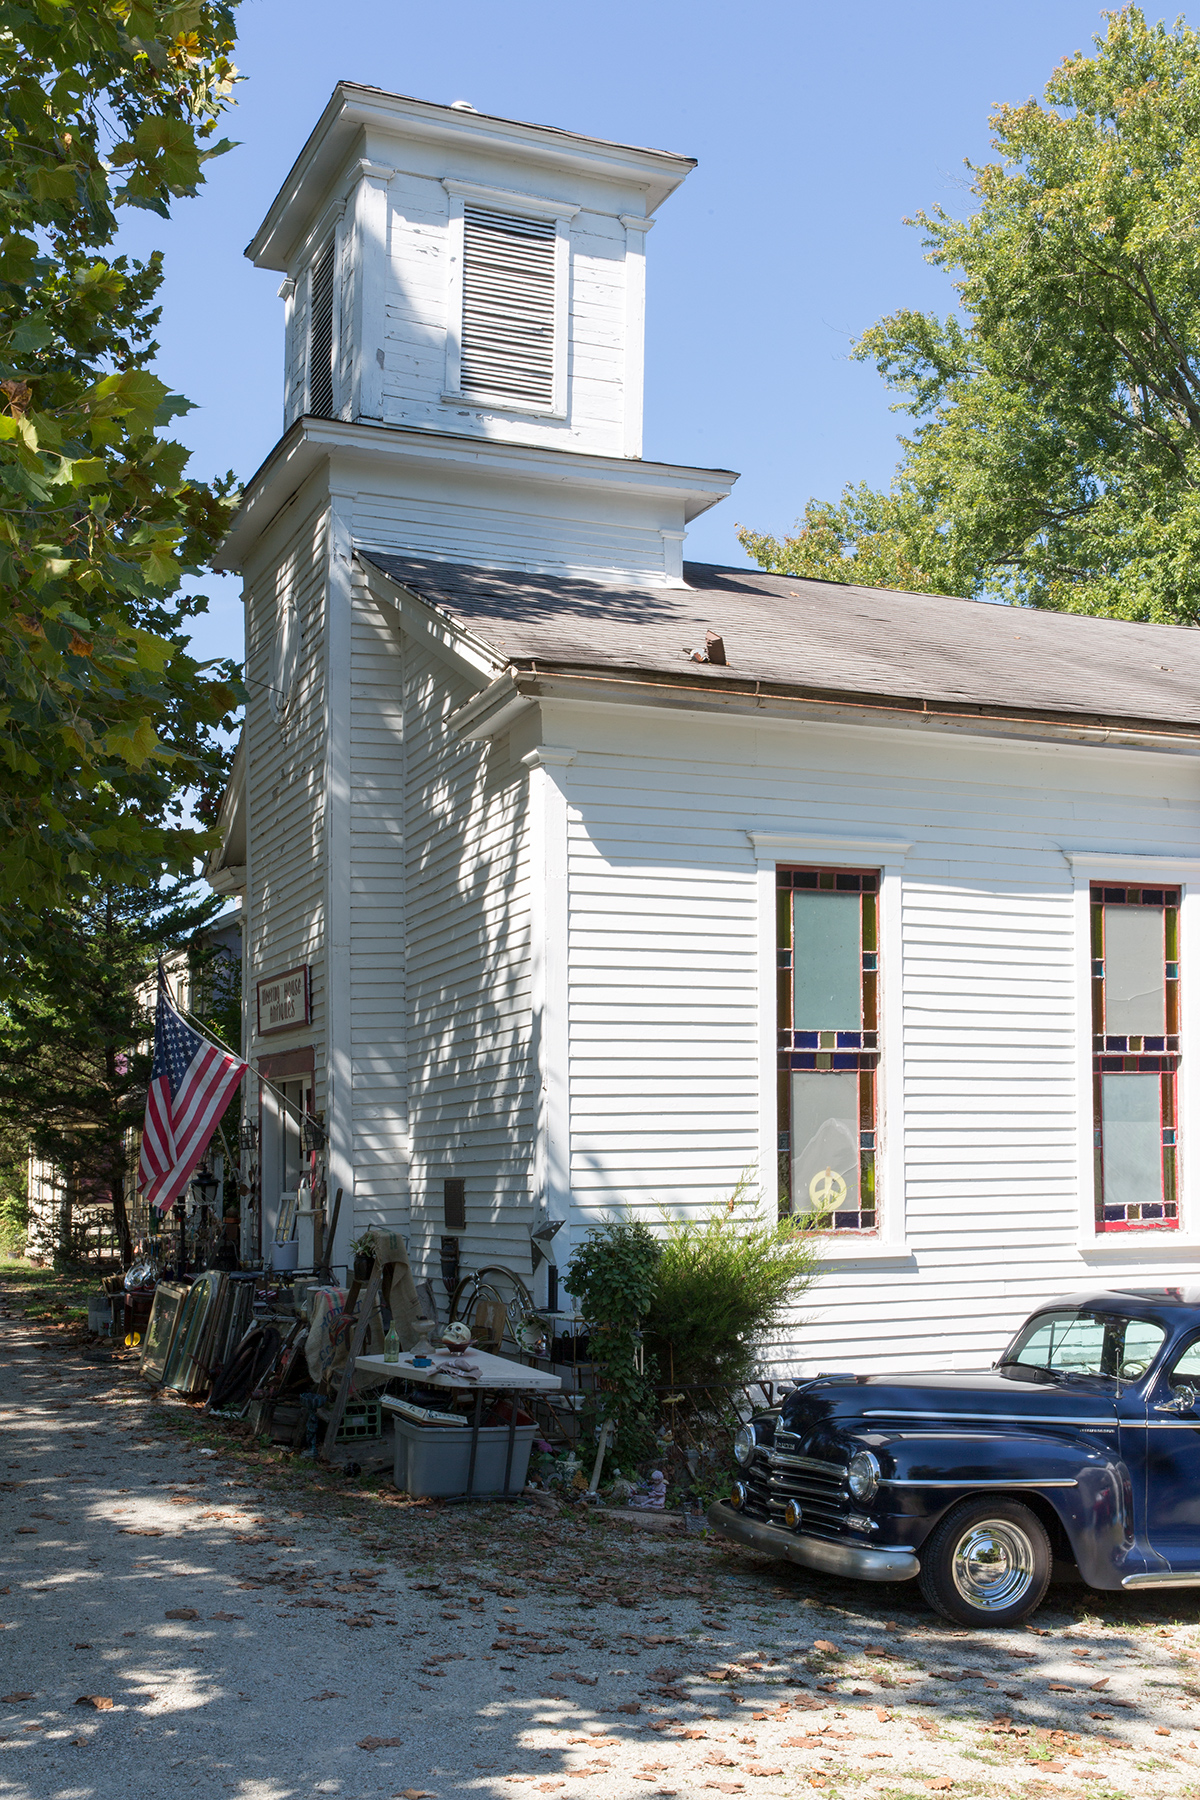 SANDY VOLZ MEETING HOUSE — Metamora